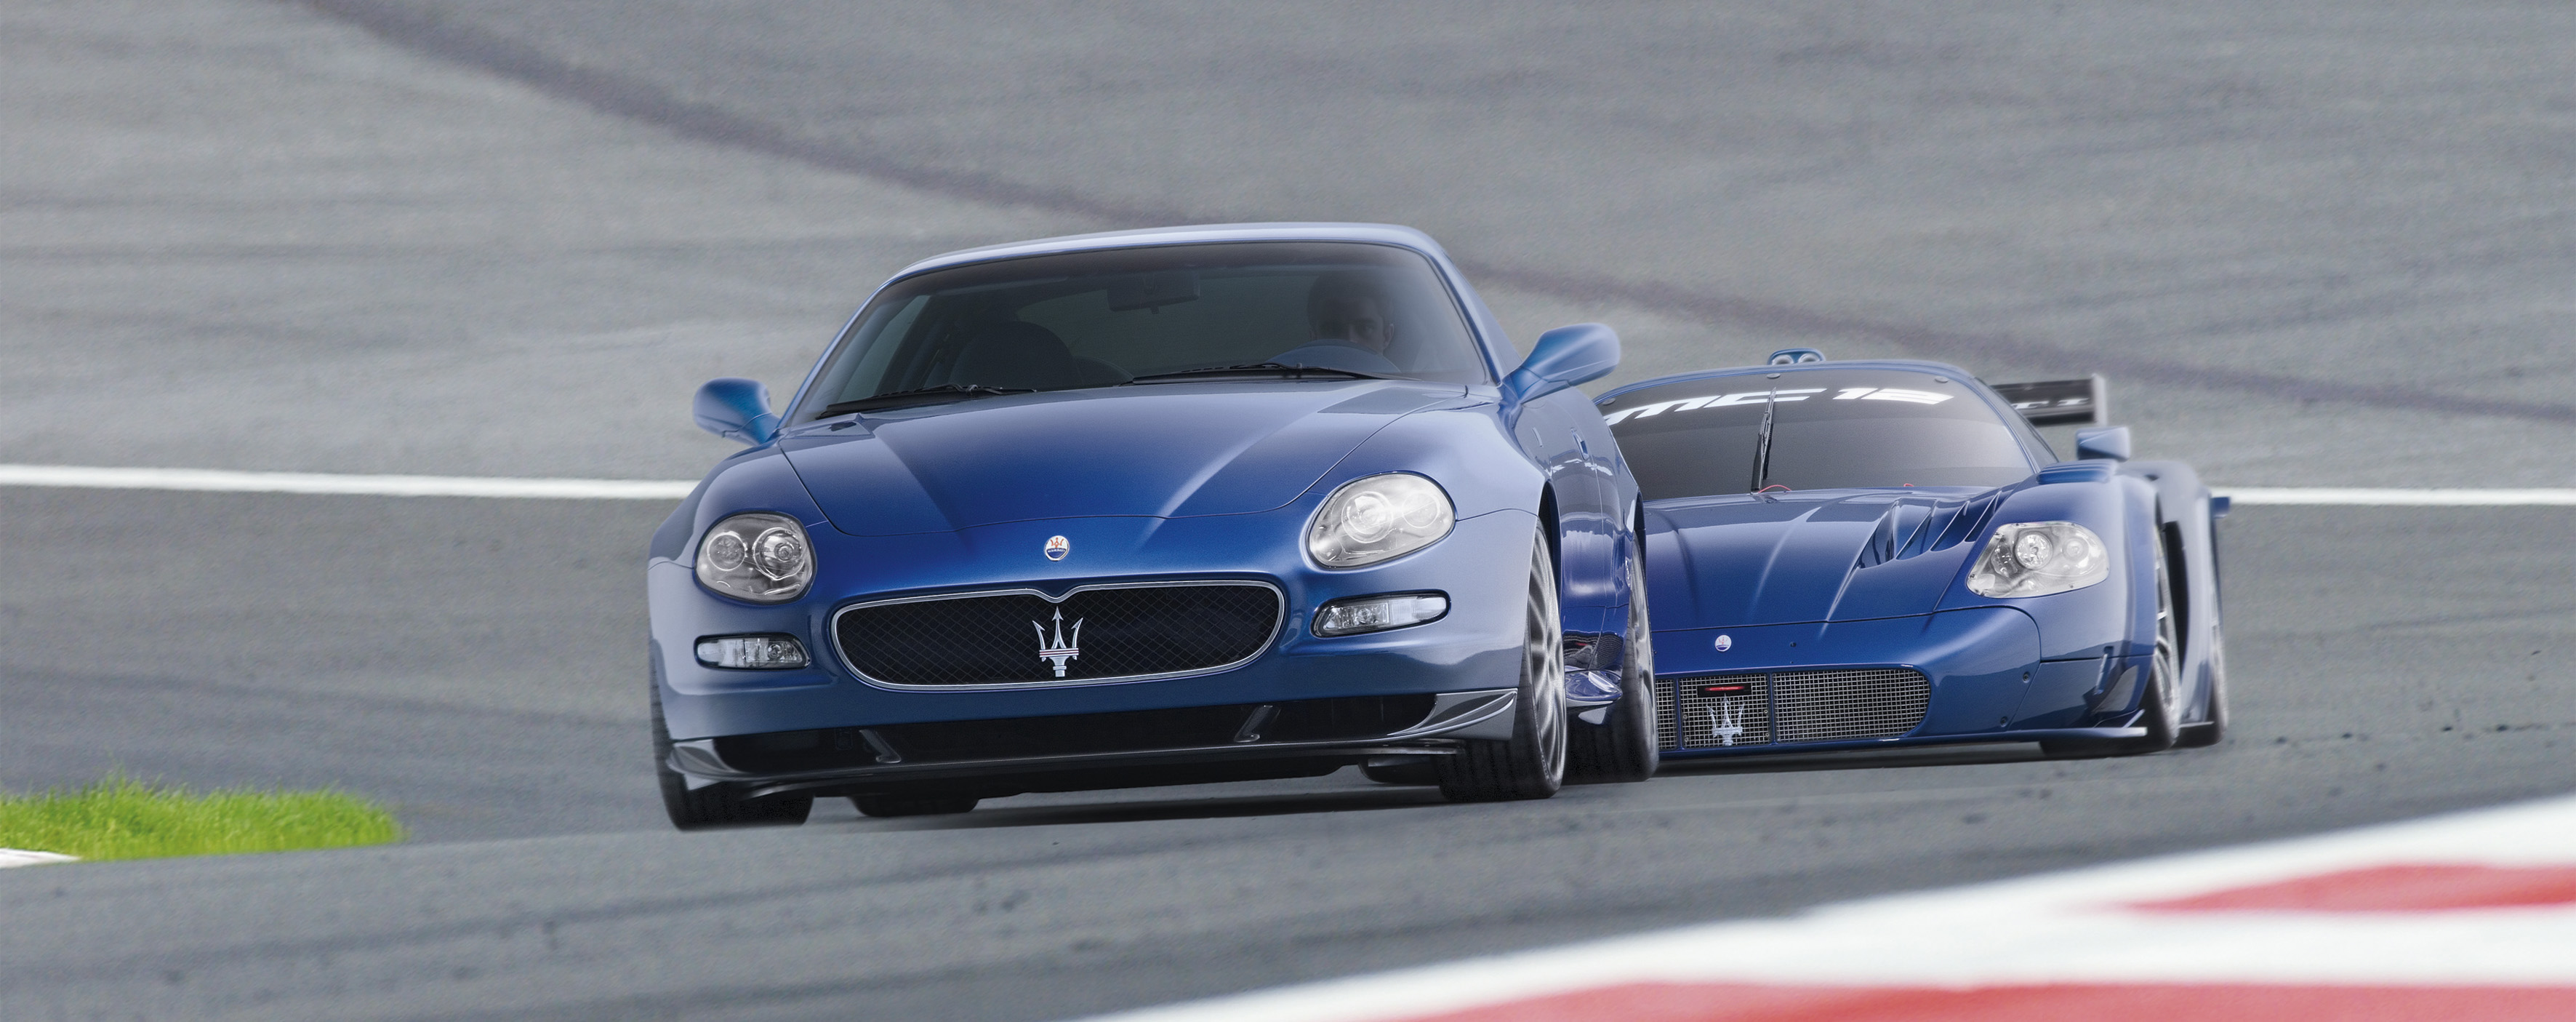 Maserati GranSport MC Victory (2006)